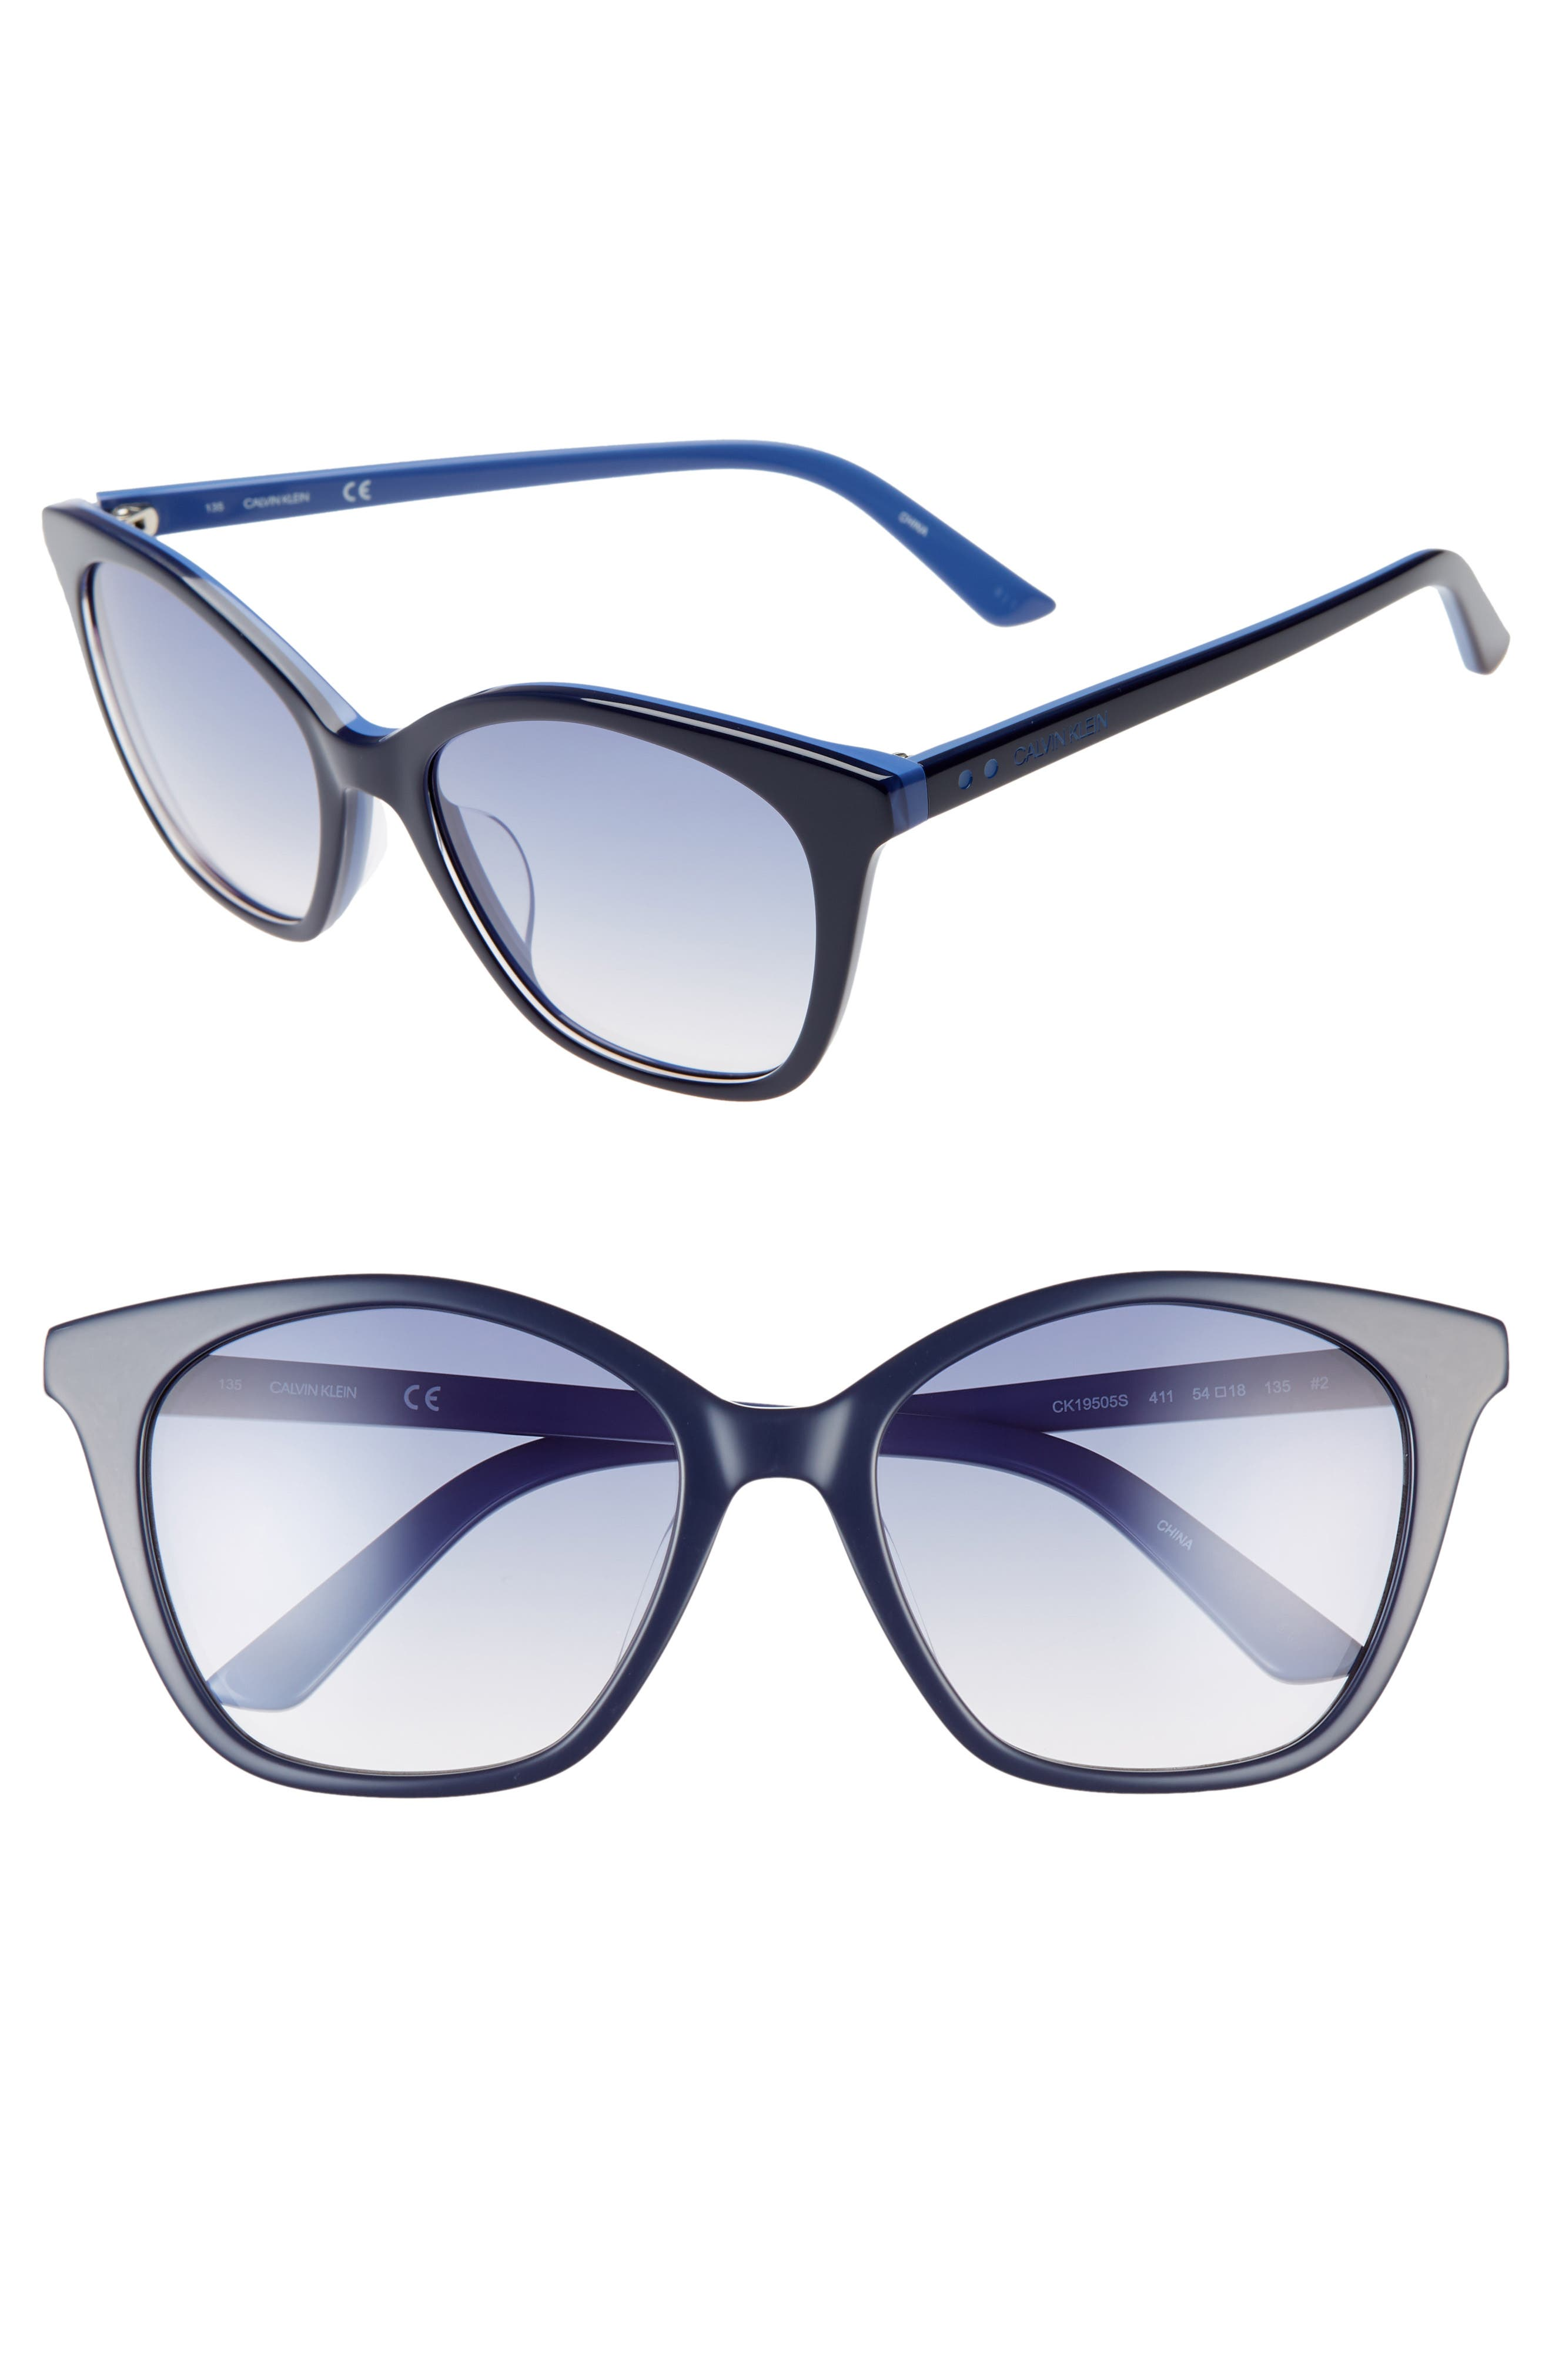 574cd37c617 Calvin Klein Sunglasses for Women